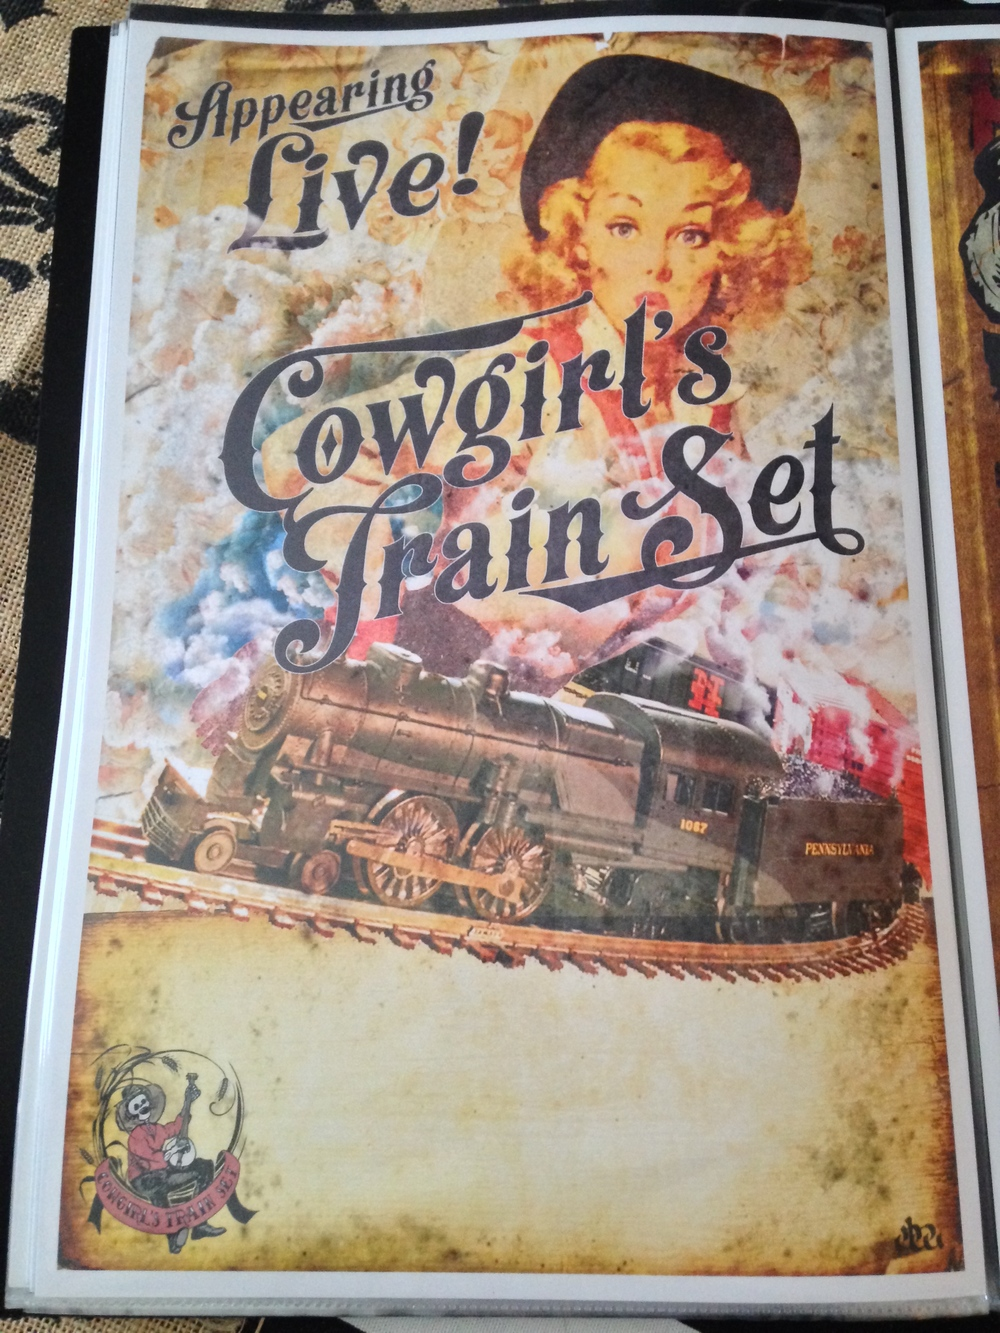 Official Tour Poster $5.00 #Cowgirl'sTour